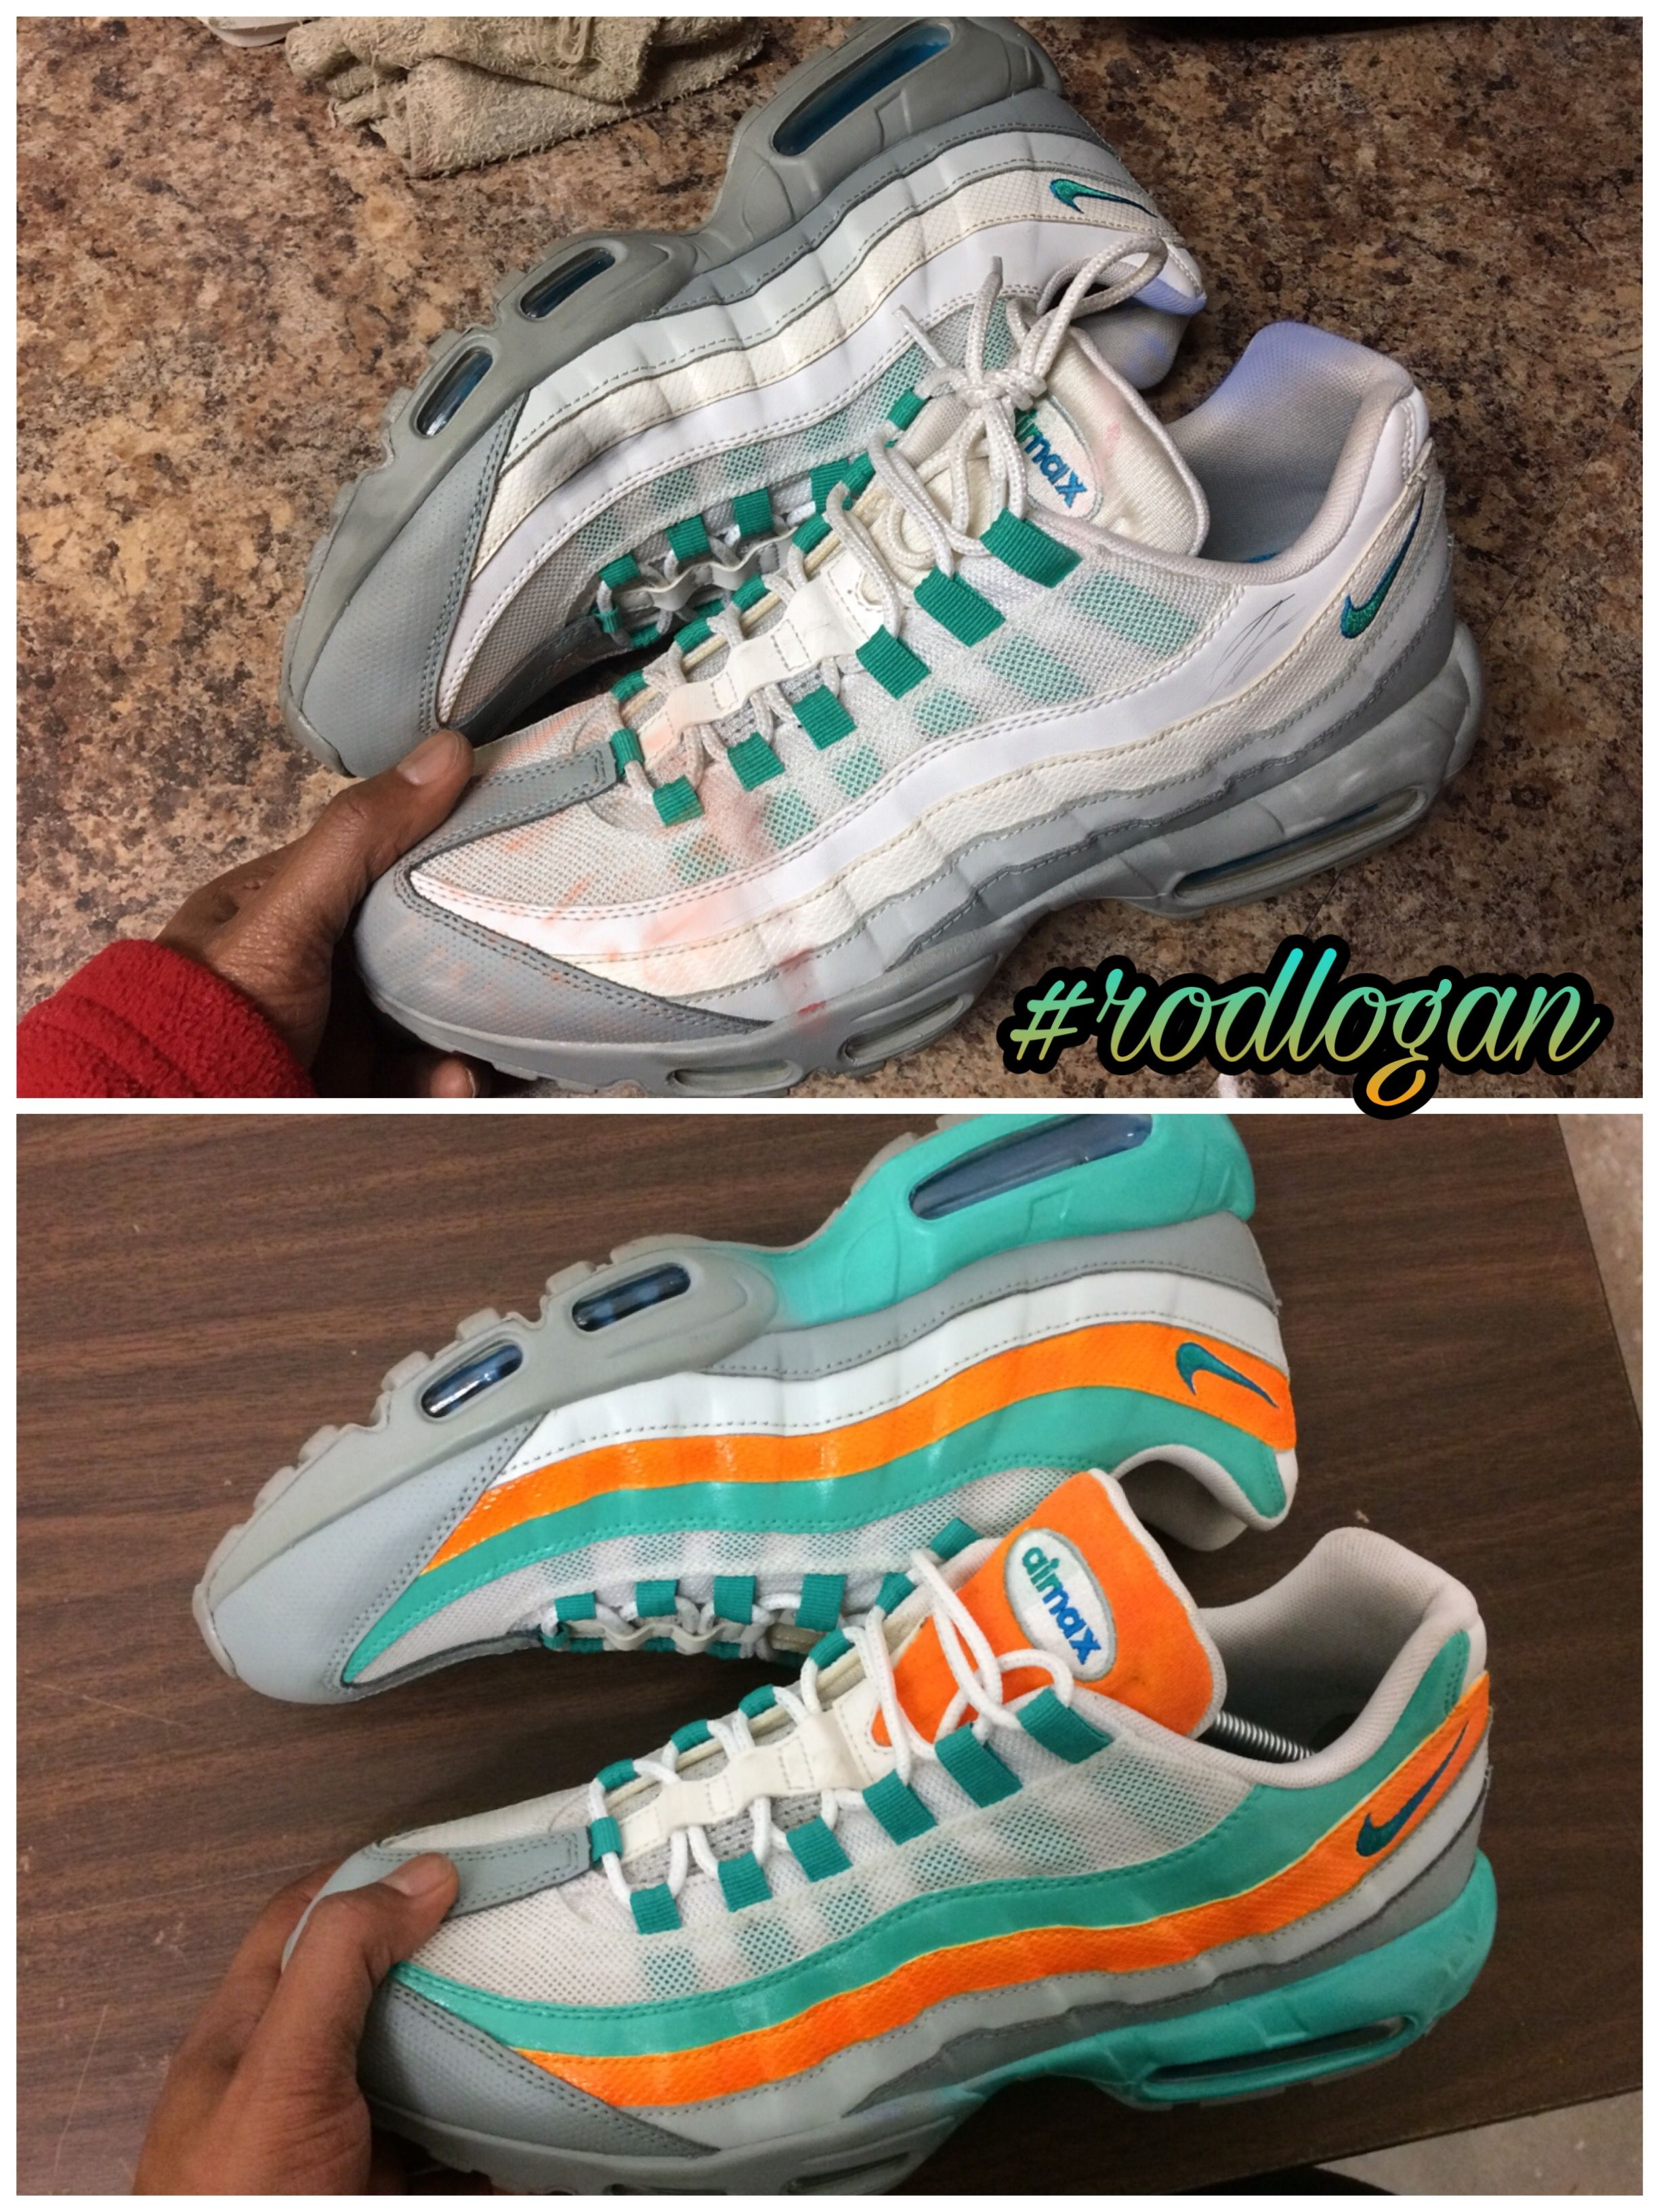 Miami Dolphins 95 airmax Custom in 2019 | Running shoes